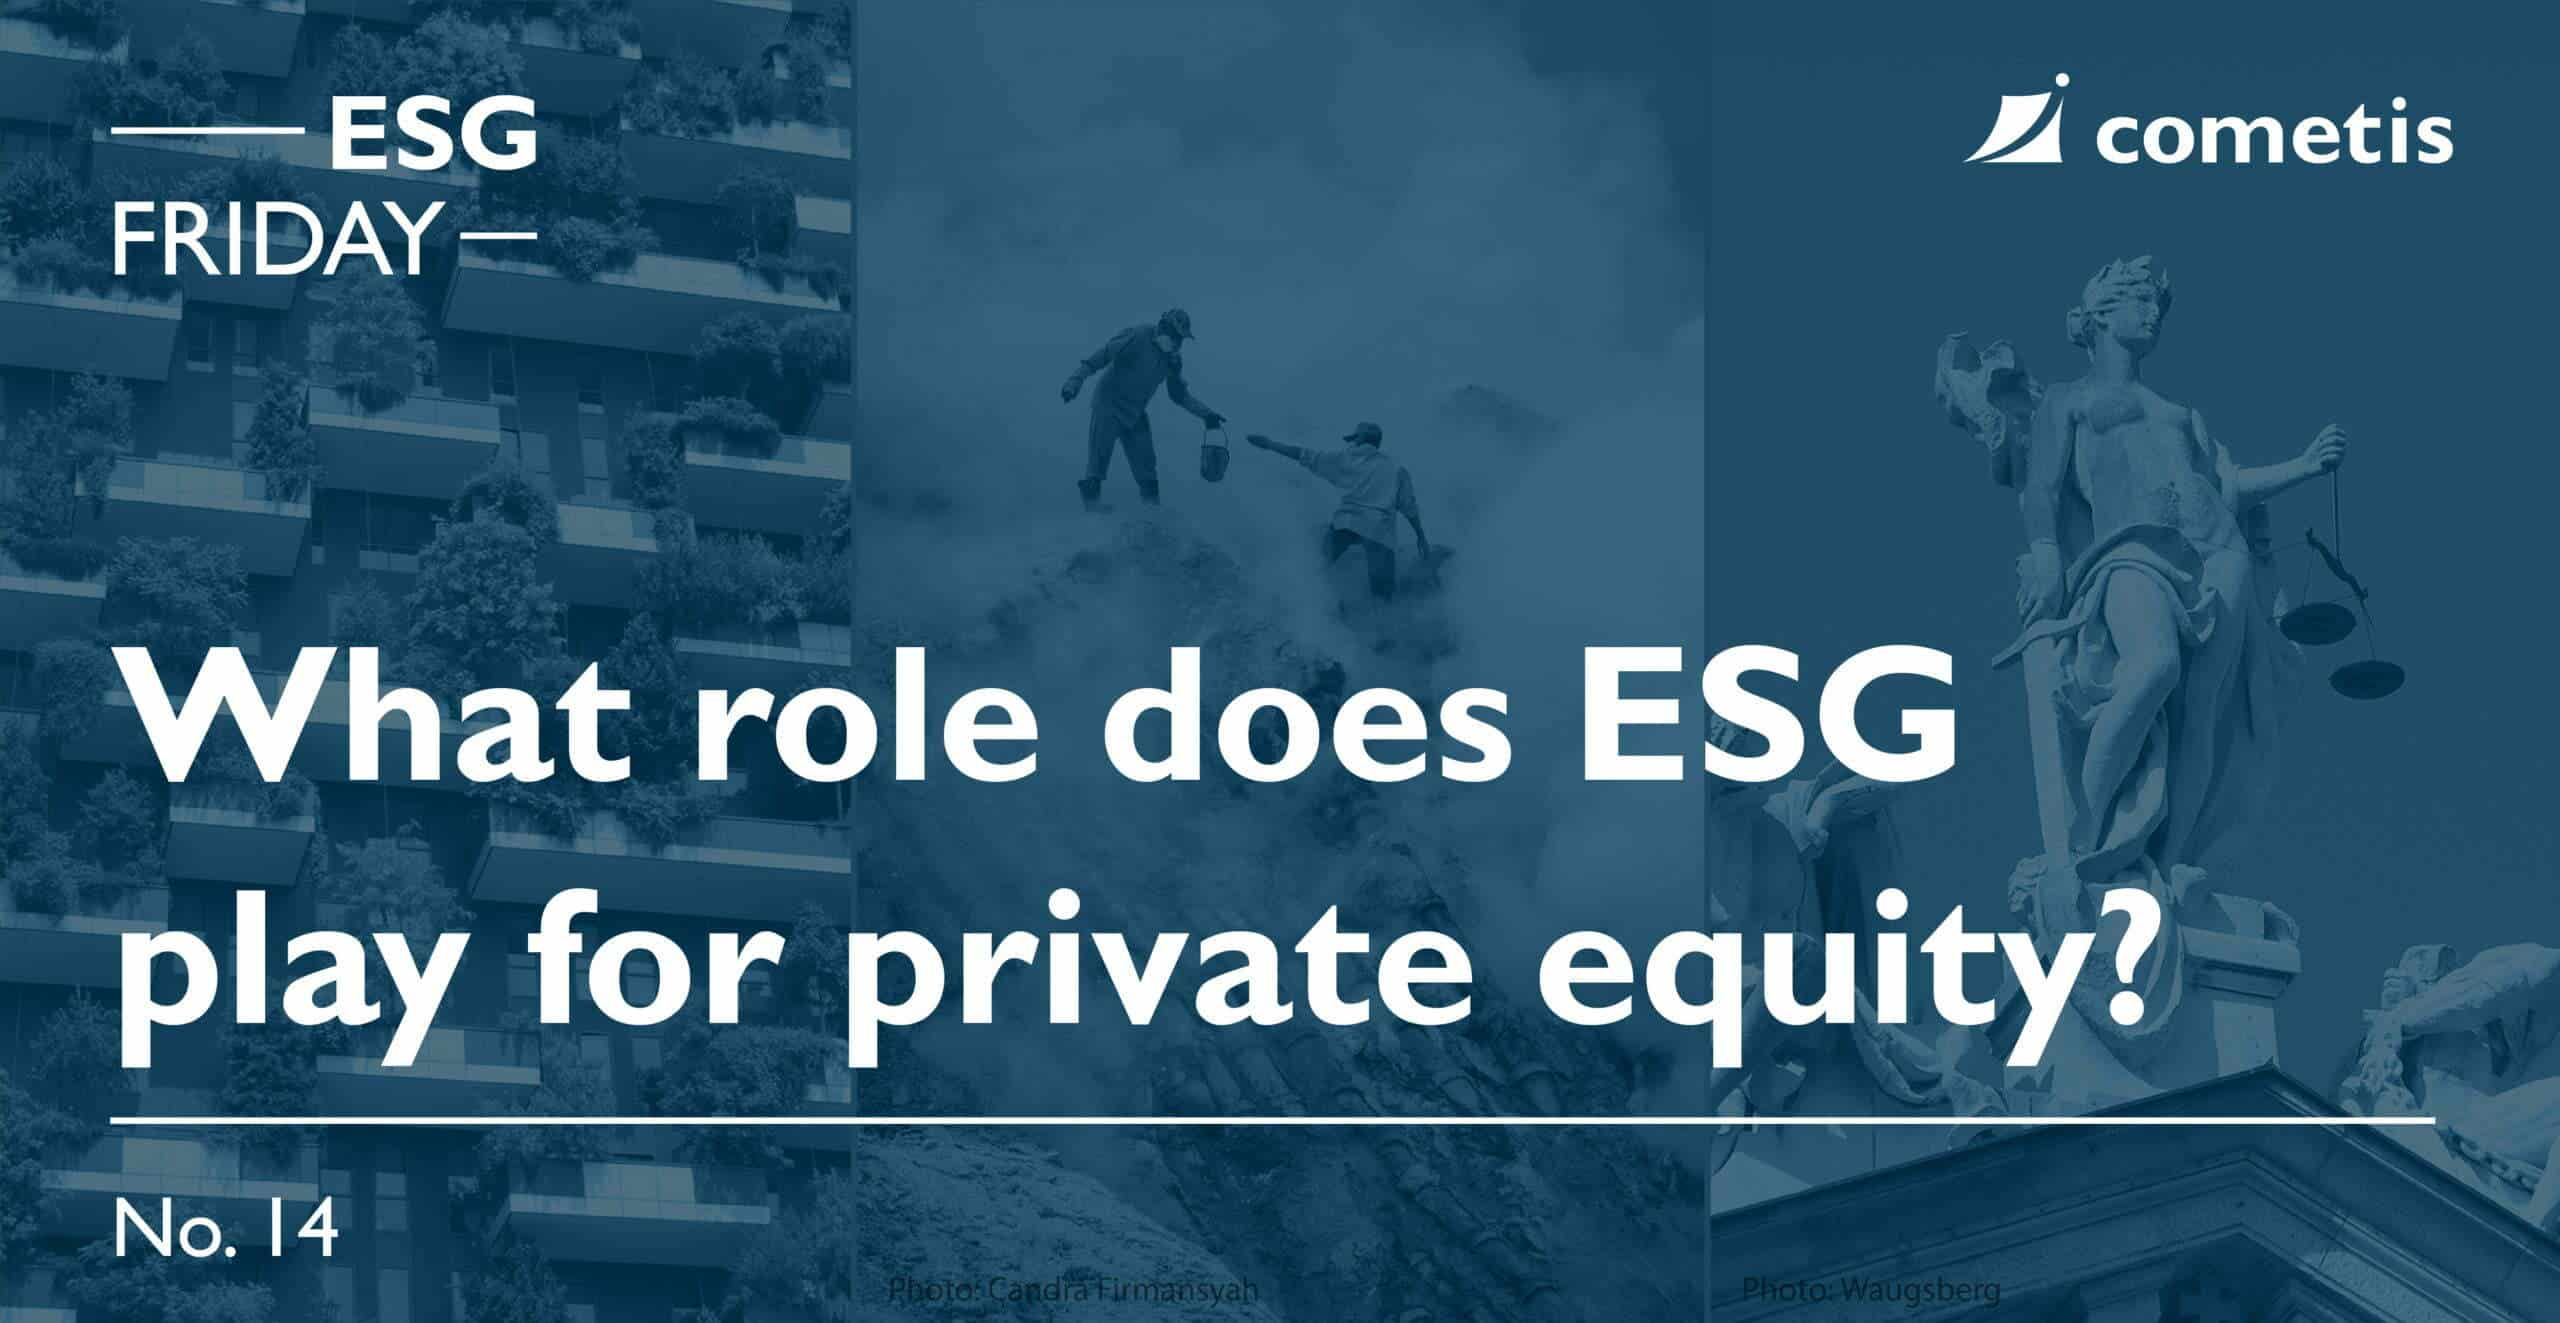 ESG Banner-The role of ESG for private equity